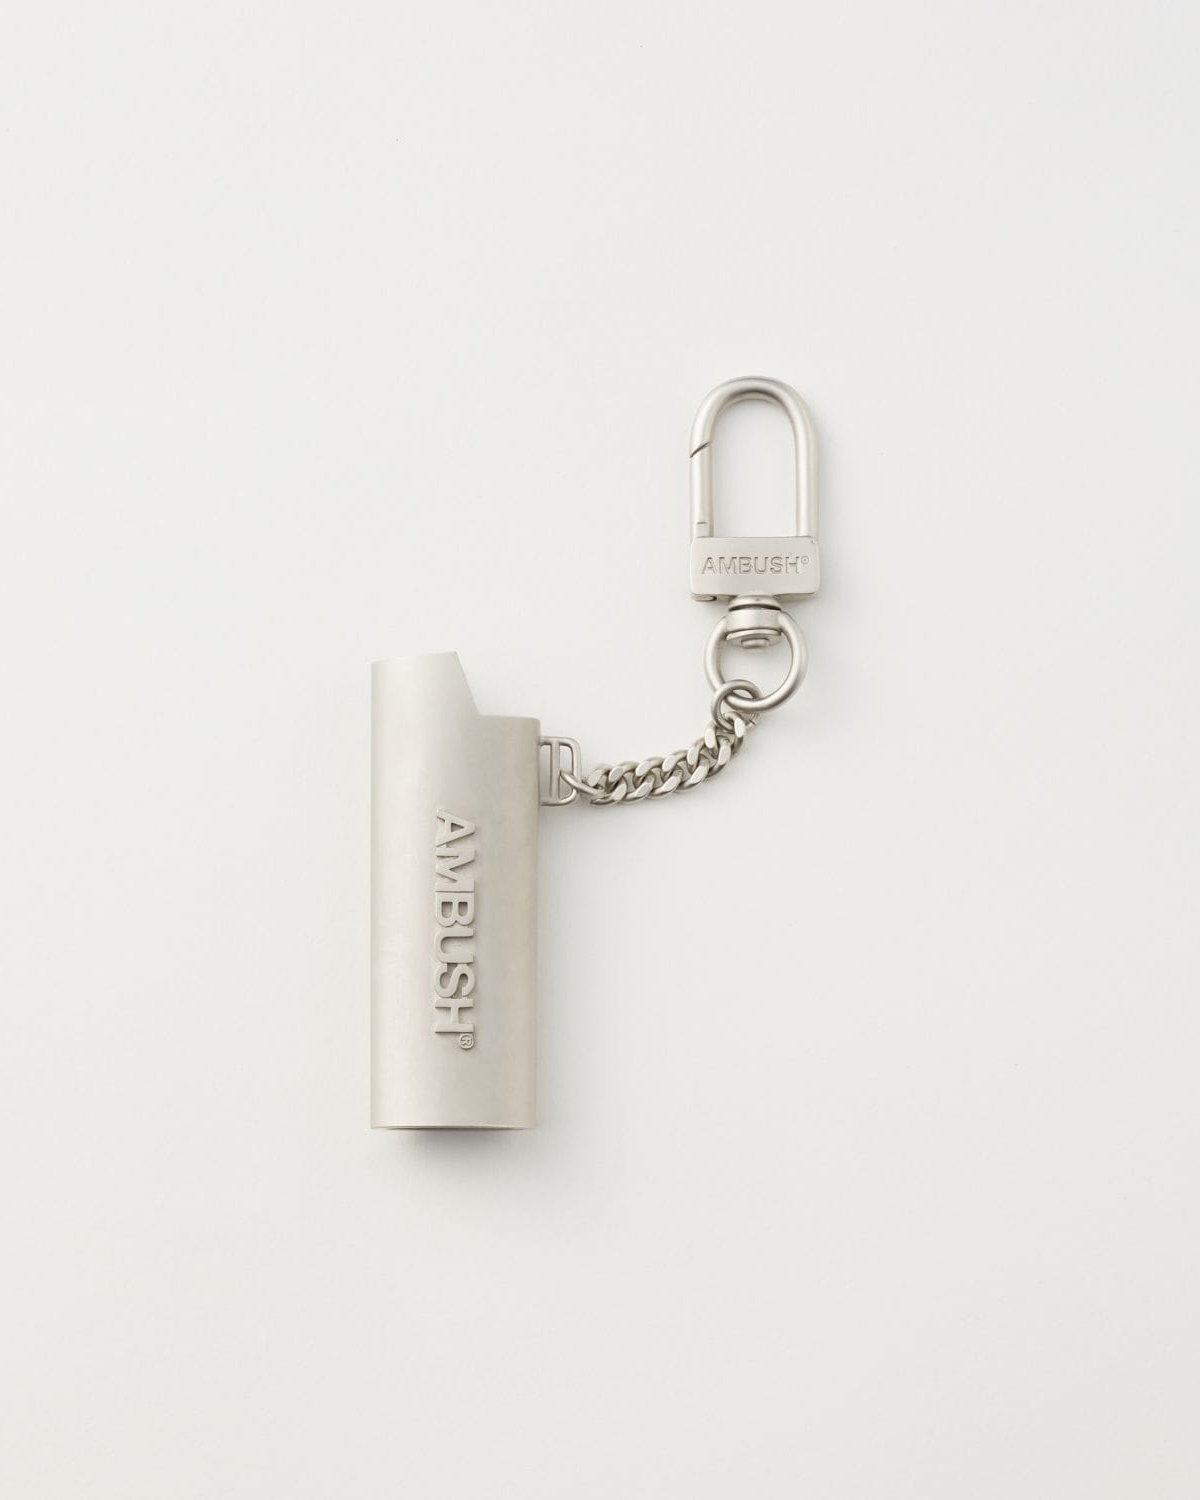 Ambush lighter case key...